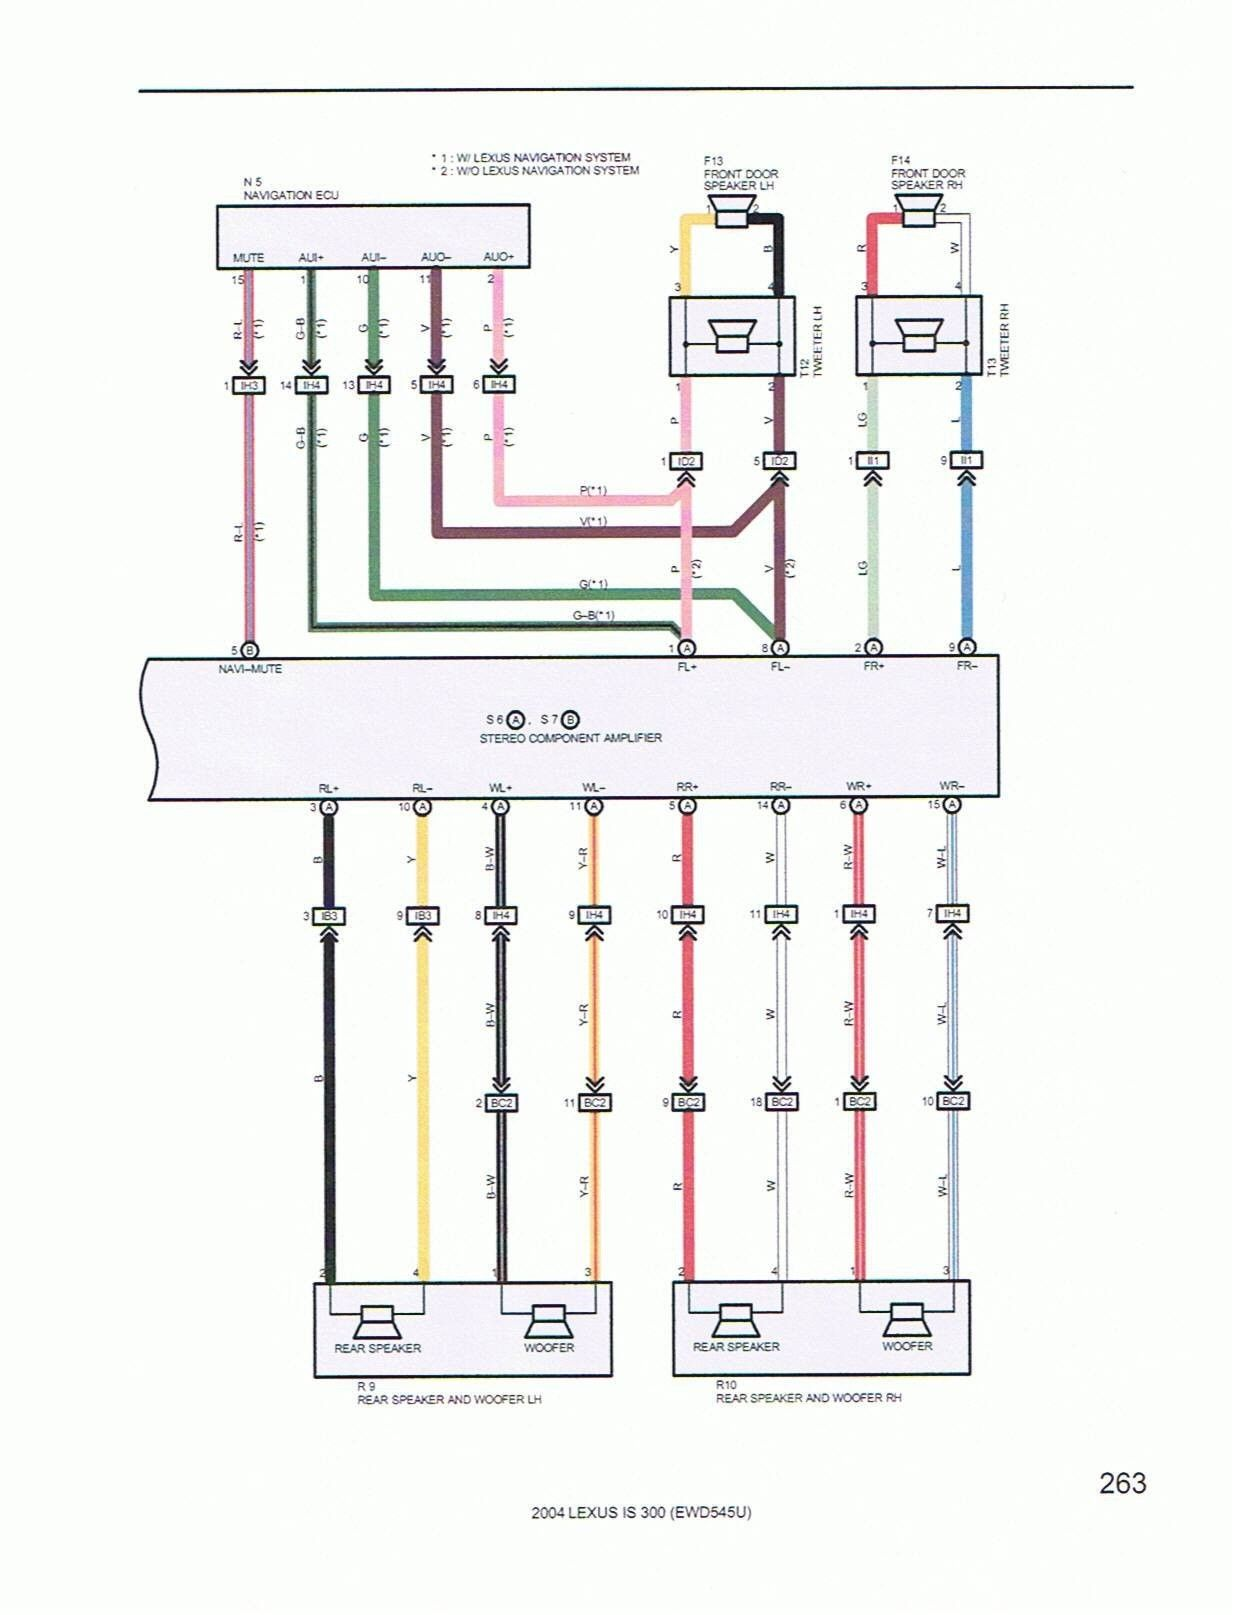 New Golf 4 Radio Wiring Diagram Diagram Diagramsample Diagramtemplate Vw Jetta Volkswagen Jetta Electrical Wiring Diagram